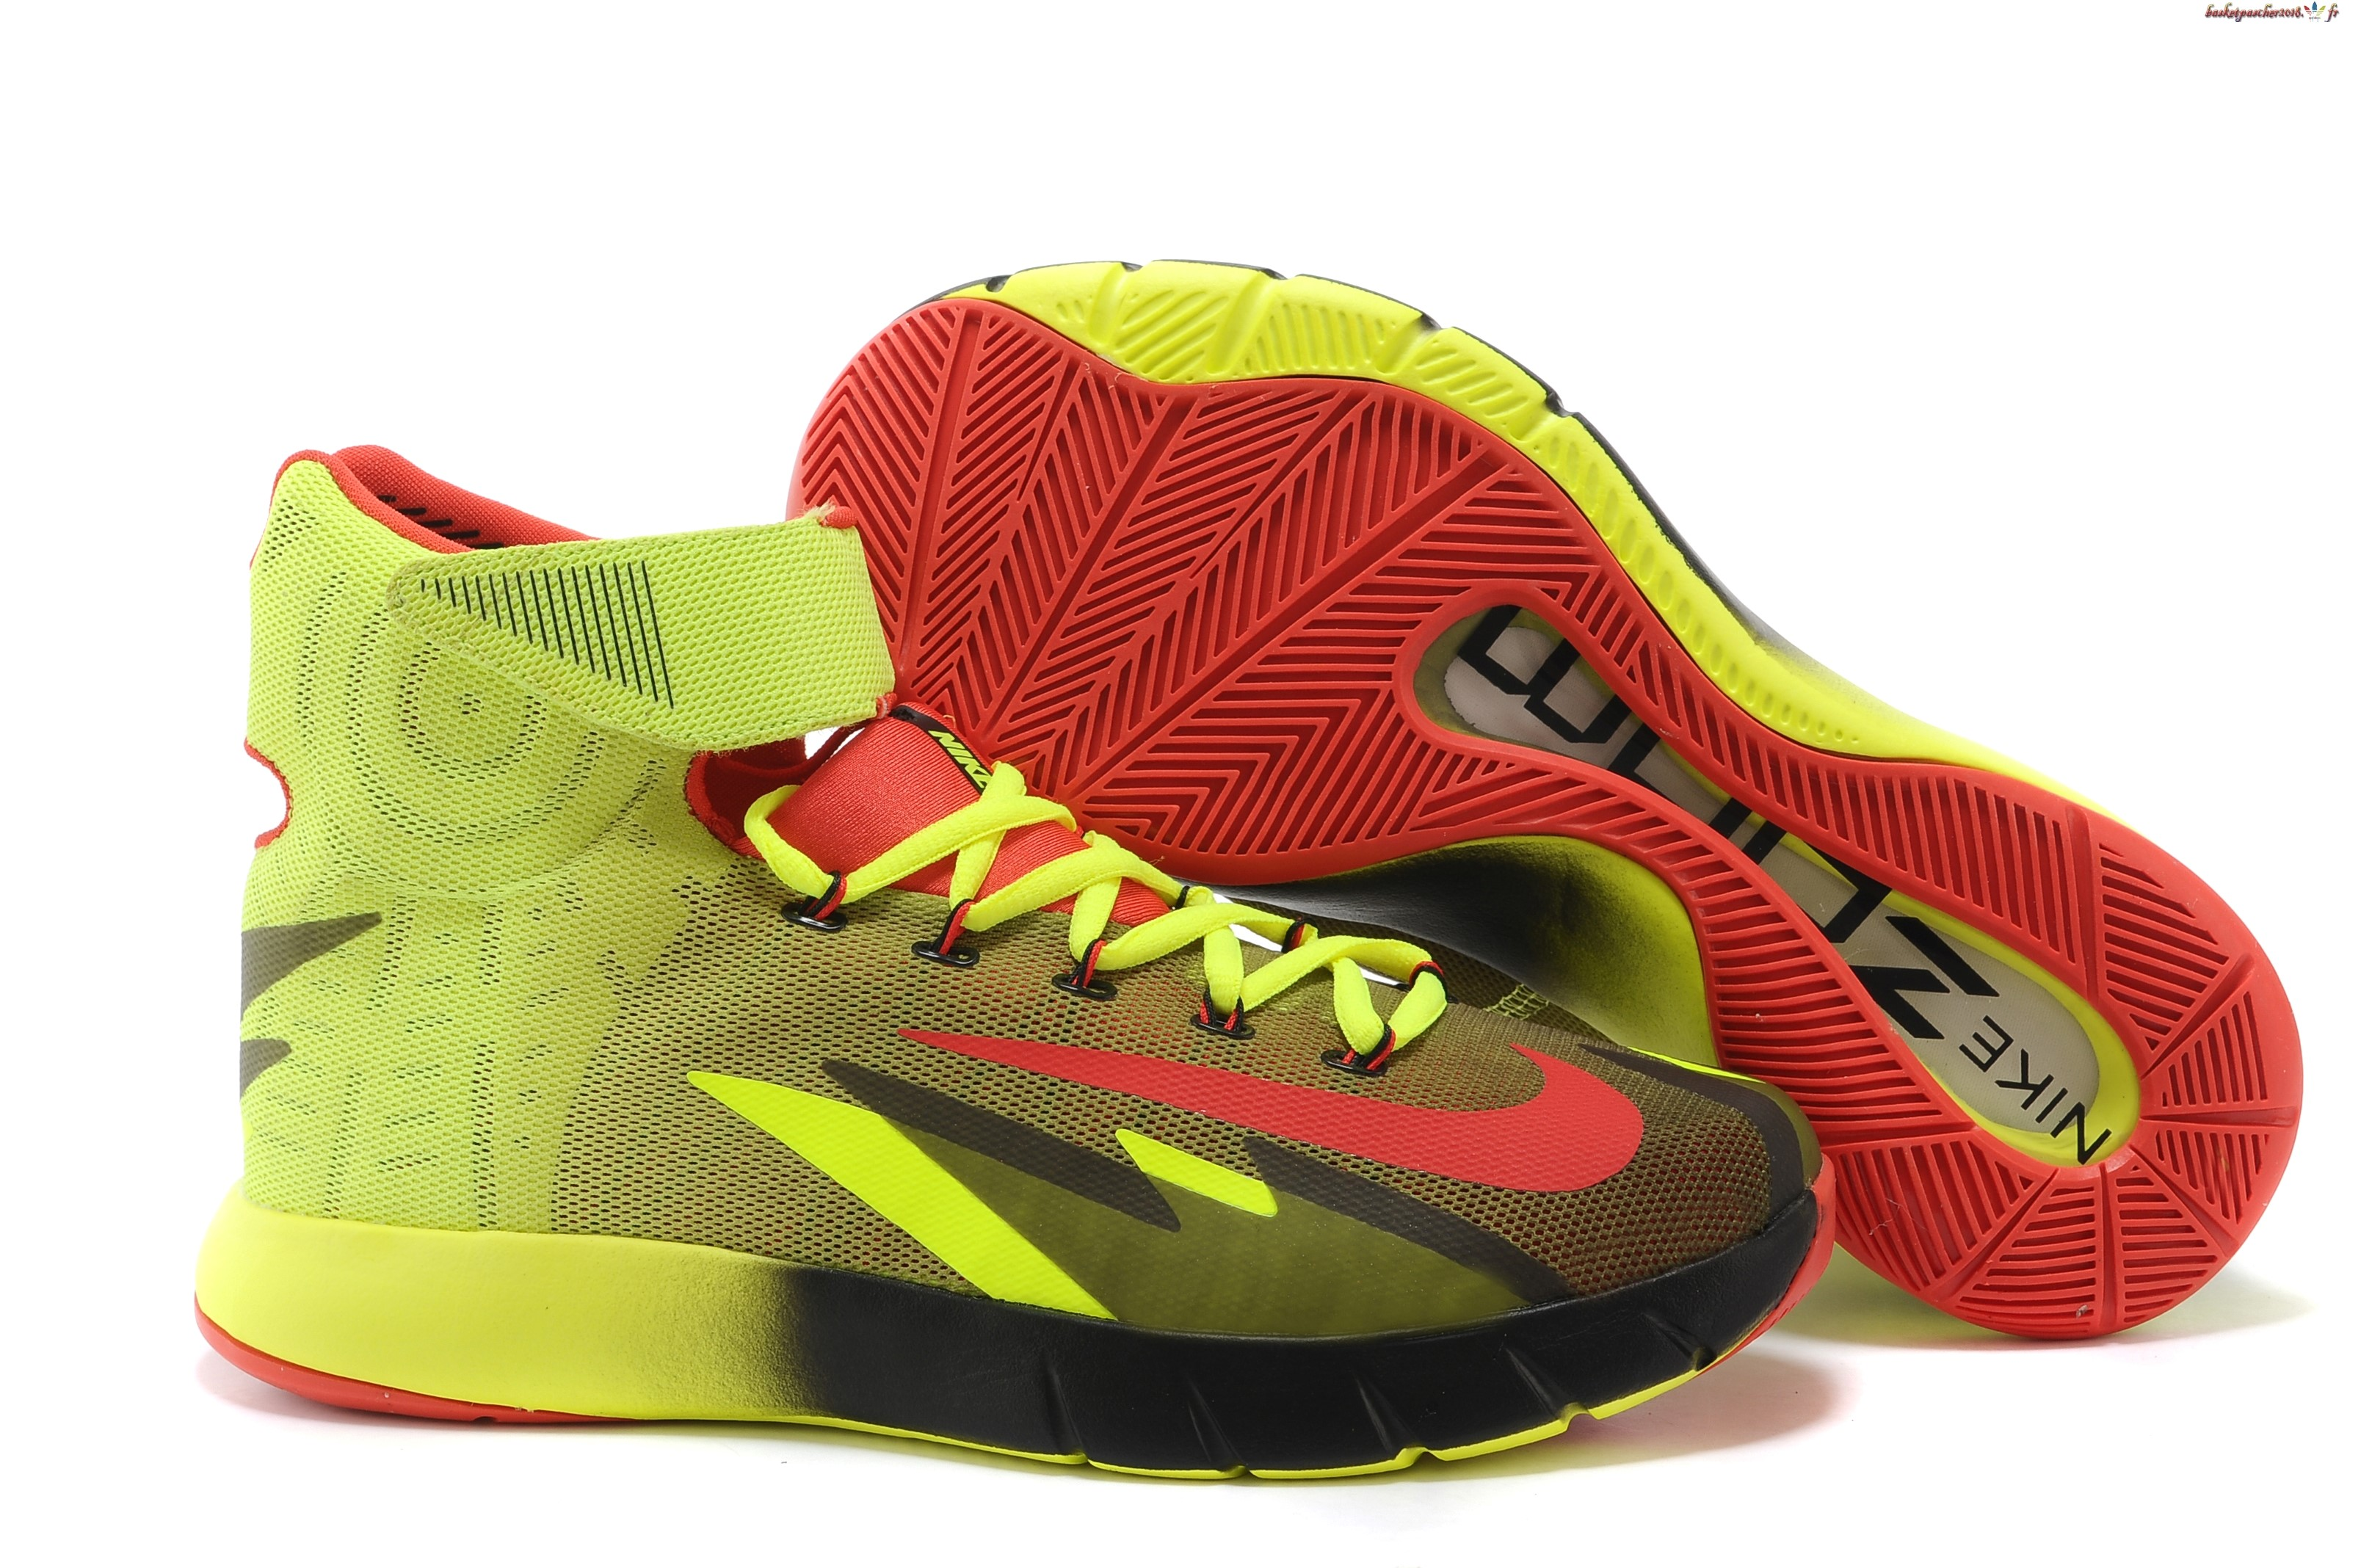 Vente Chaude Chaussures De Basketball Homme Nike Zoom Hyperrev Kyrie Irving Vert Noir Rouge Pas Cher